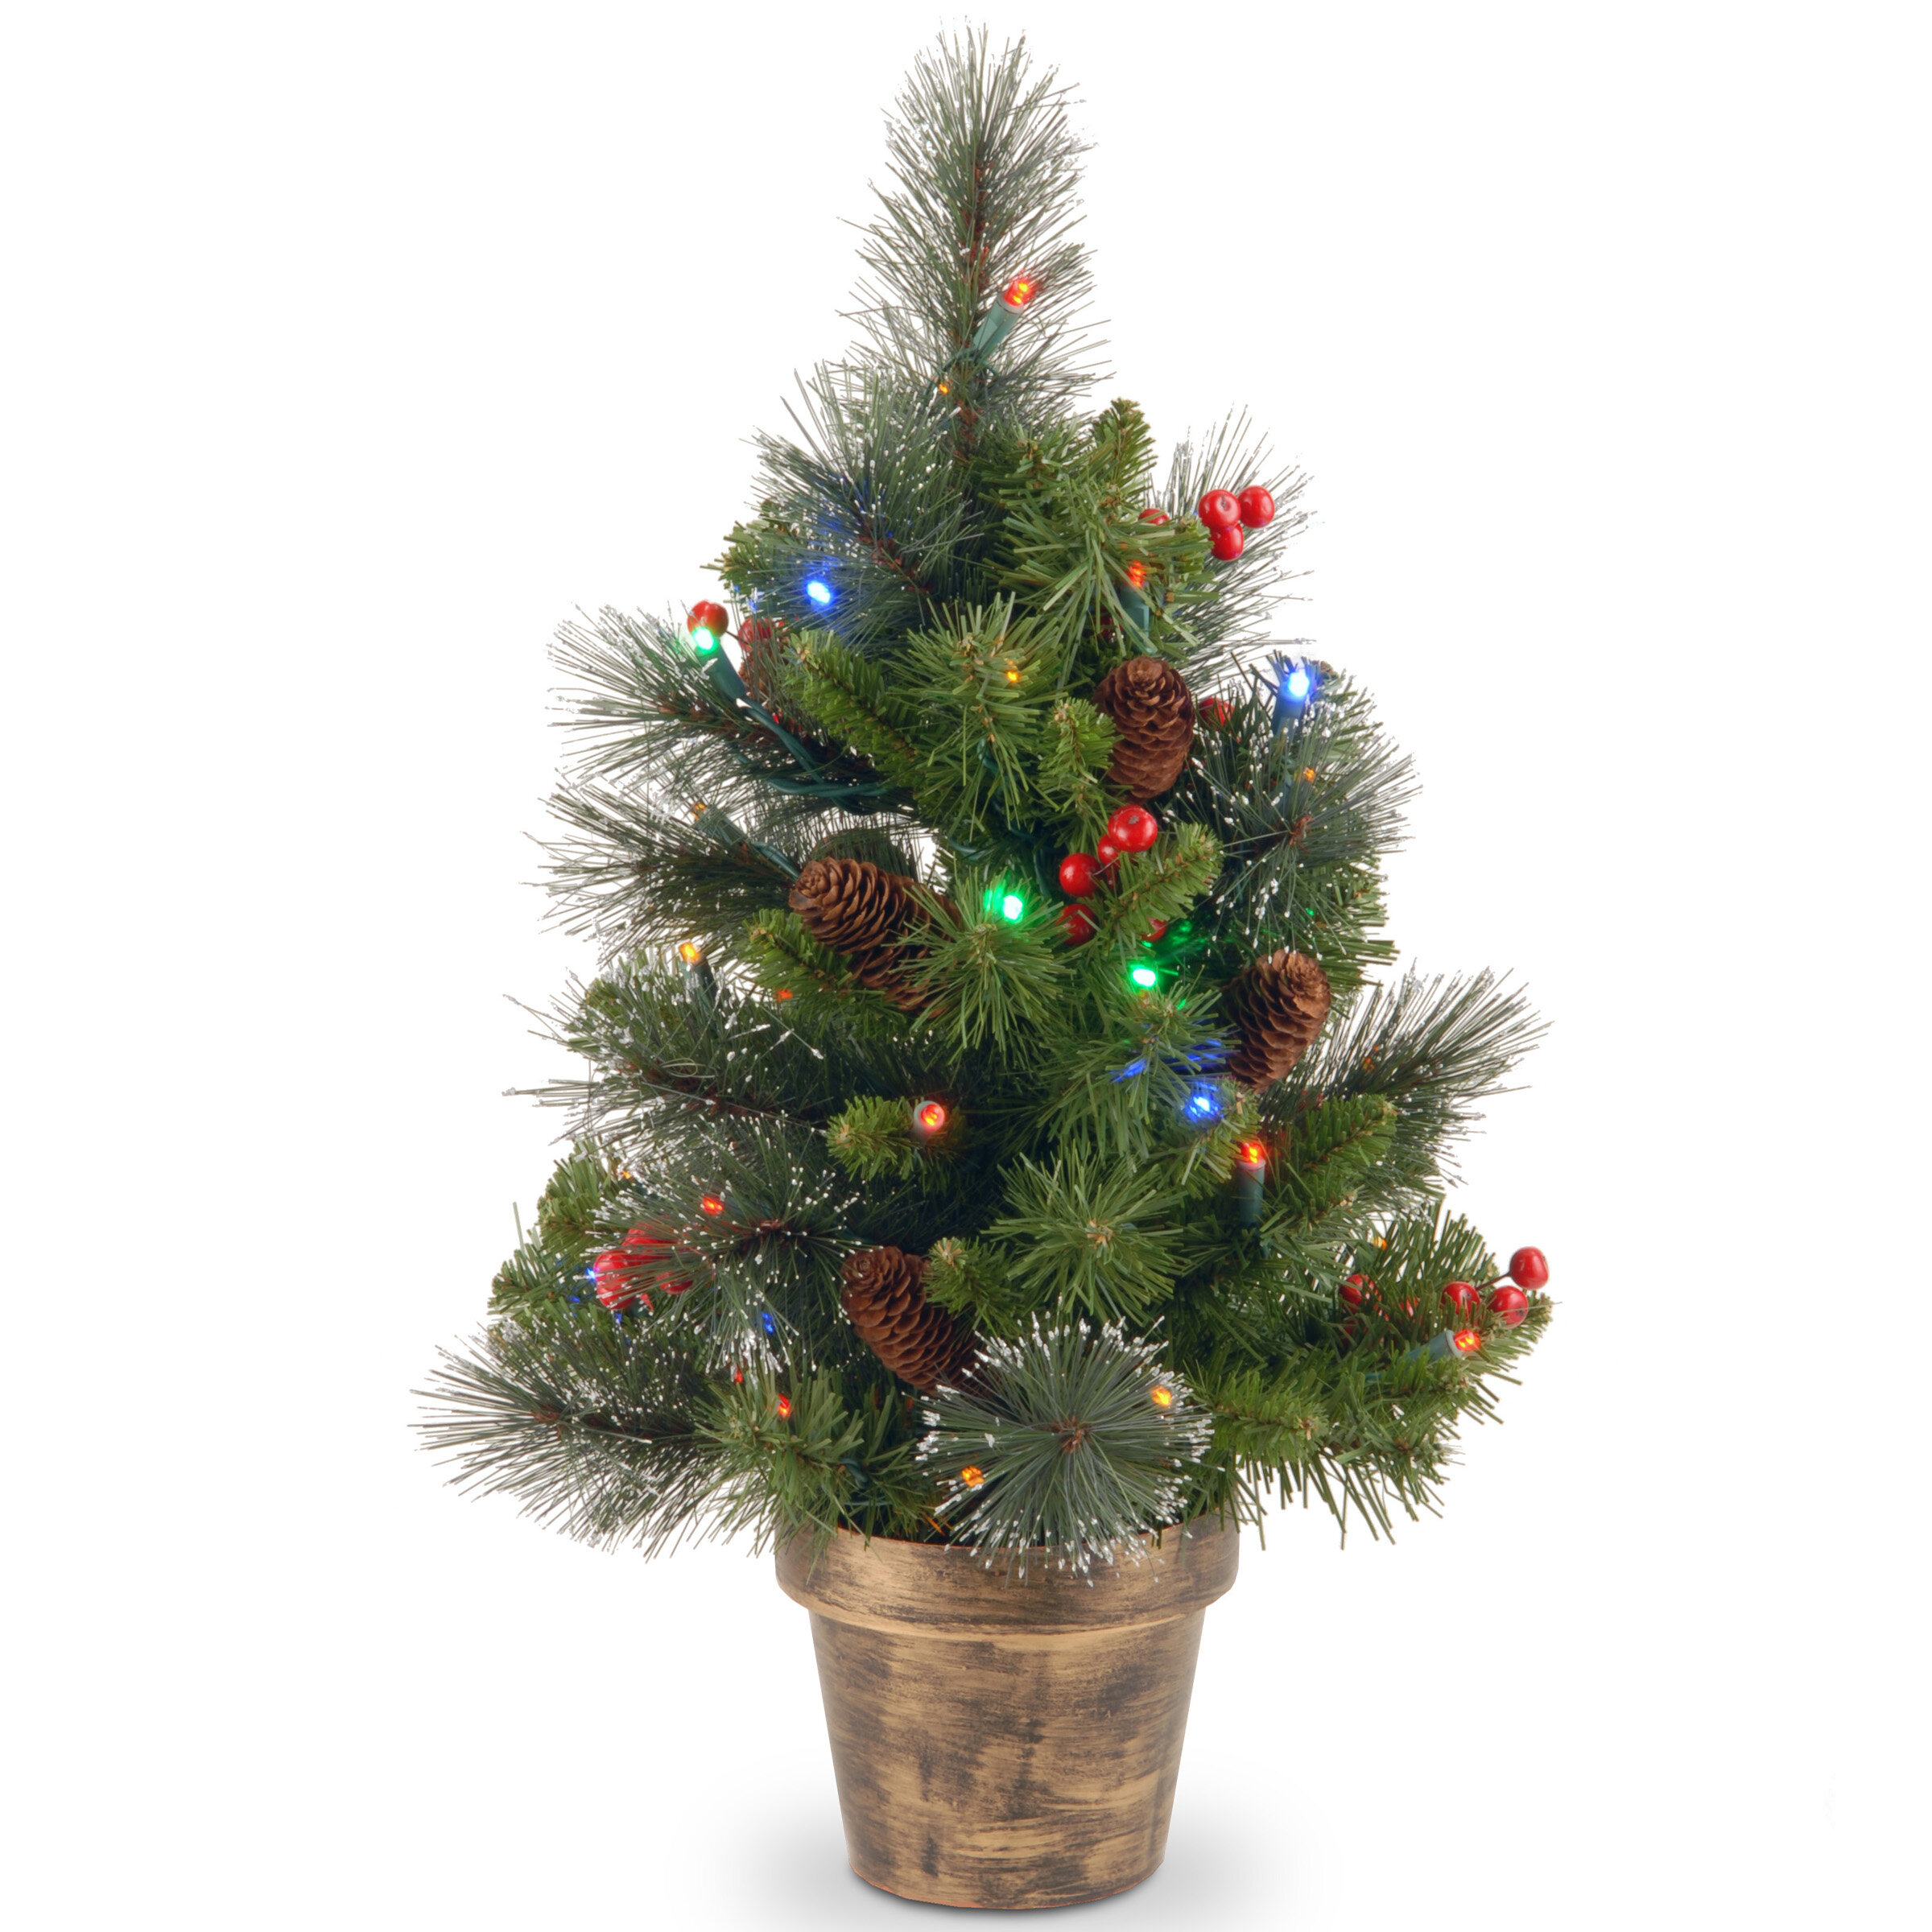 online retailer aa789 9d59c Spruce Small 2' Green Artificial Christmas Tree with 35 Multicolored Lights